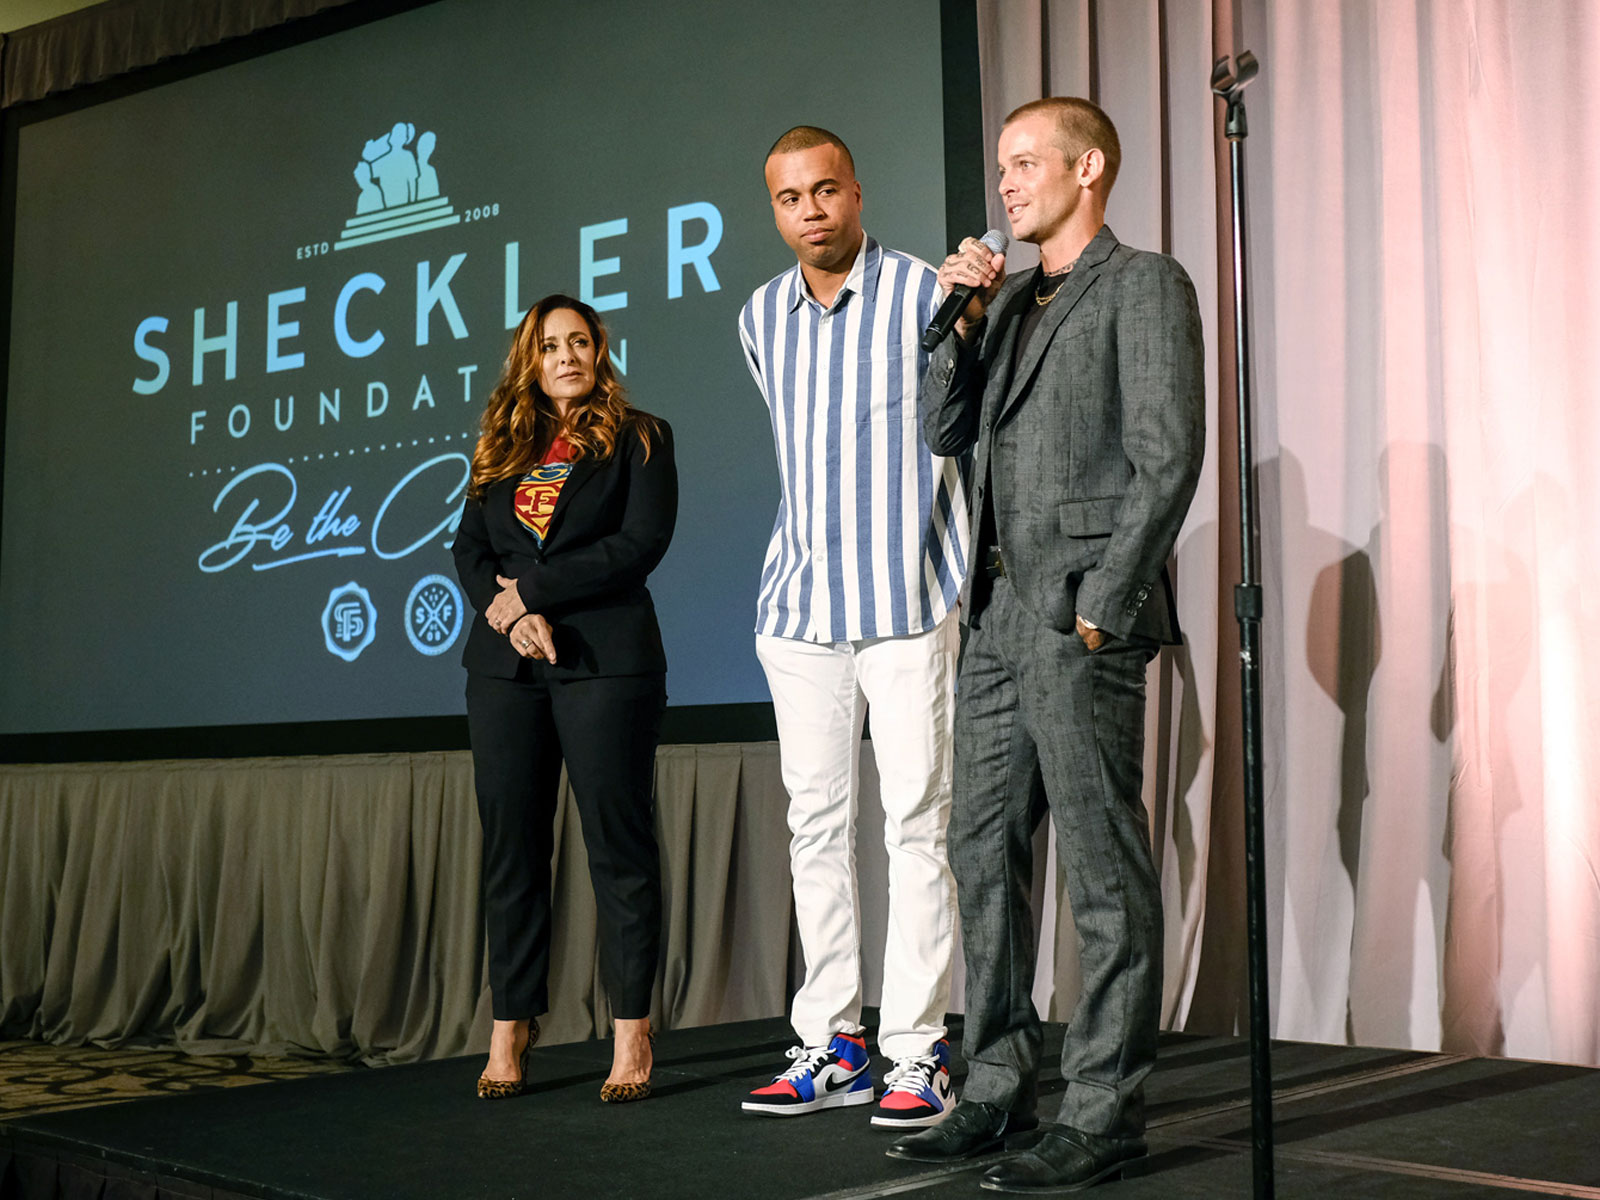 Ryan Sheckler Foundation 12th Annual Charity Golf Tournament and Gala